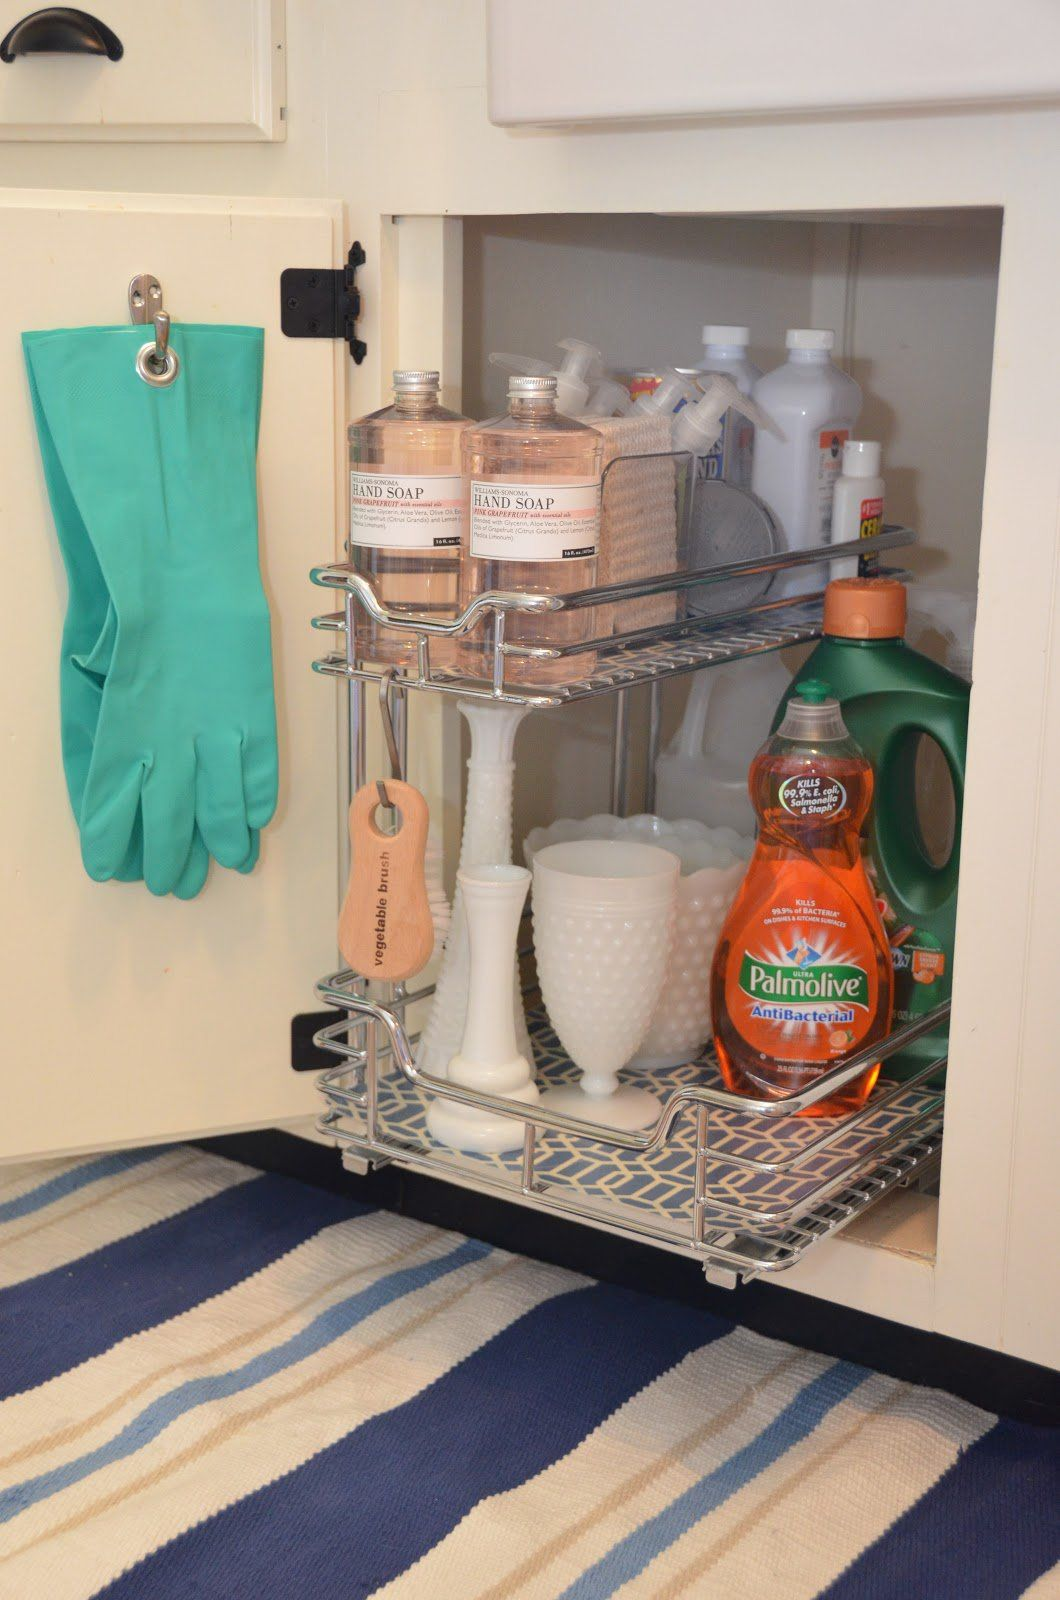 16 Renovations Under Your Sink That Will Wow Kitchen Sink Storage Under Kitchen Sinks Under Sink Storage